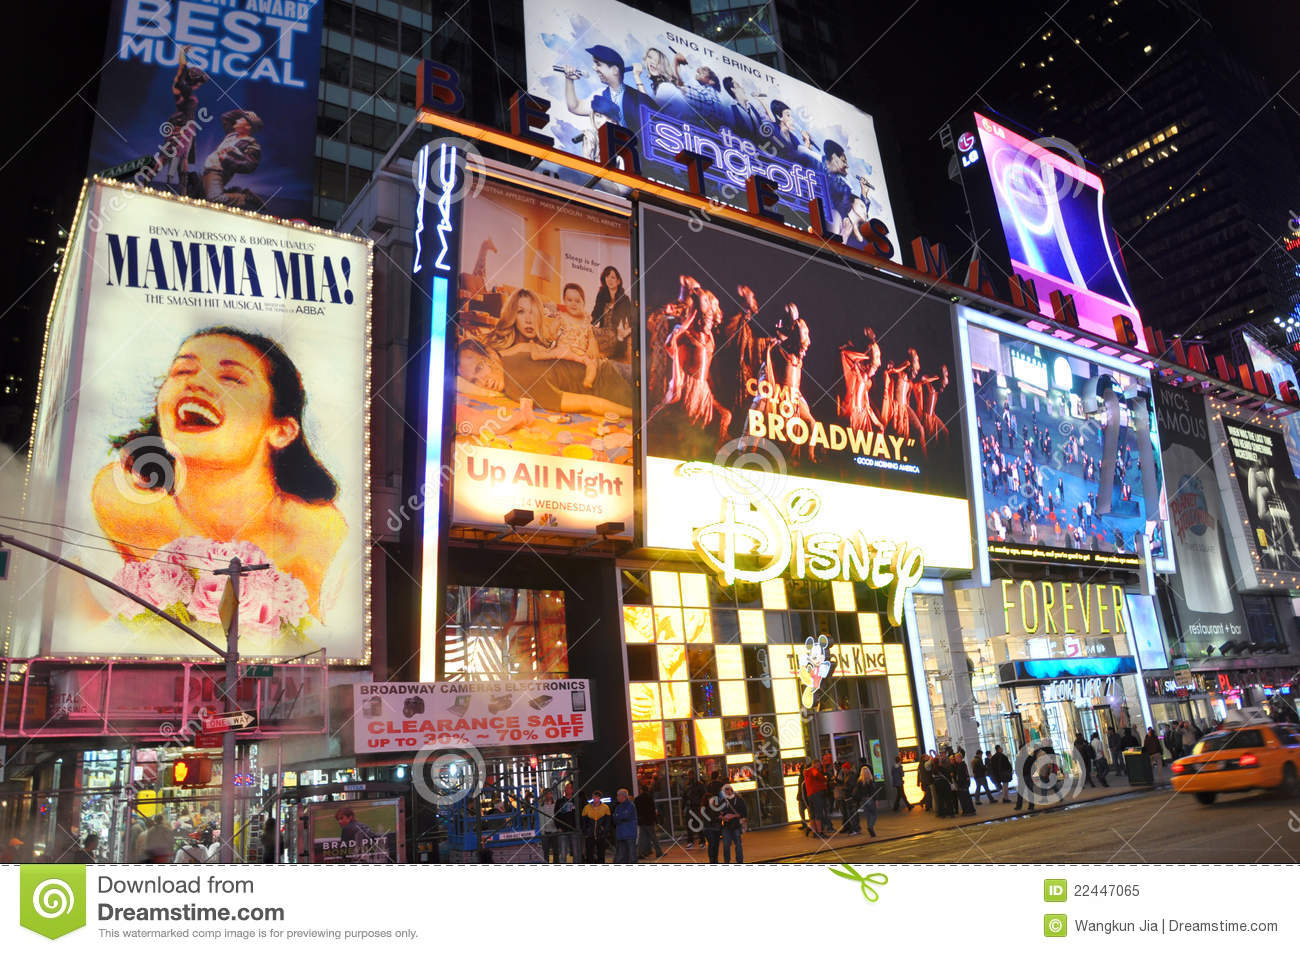 Clothing stores near times square Women clothing stores